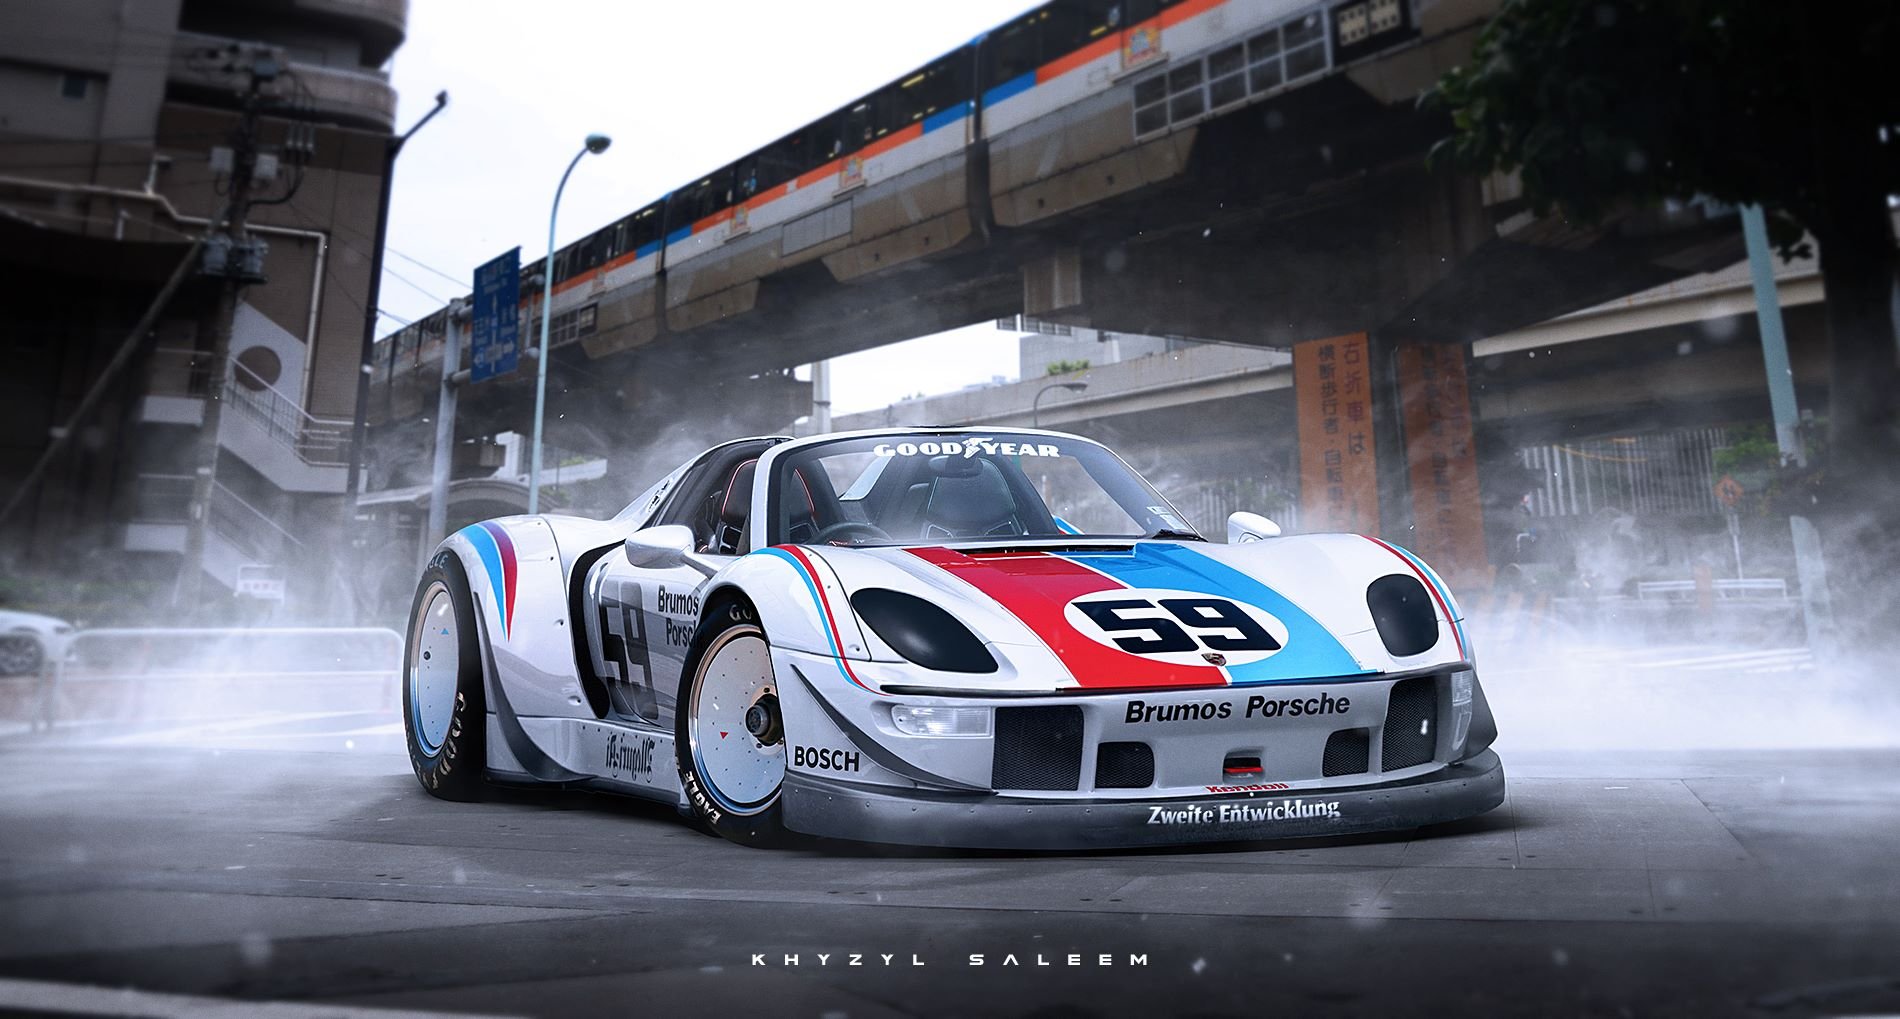 porsche-918-spyder-gets-rauh-welt-begriff-body-kit-in-extremely-wild-rendering-100419_1 Marvelous Porsche 918 Spyder Mark Webber Cars Trend